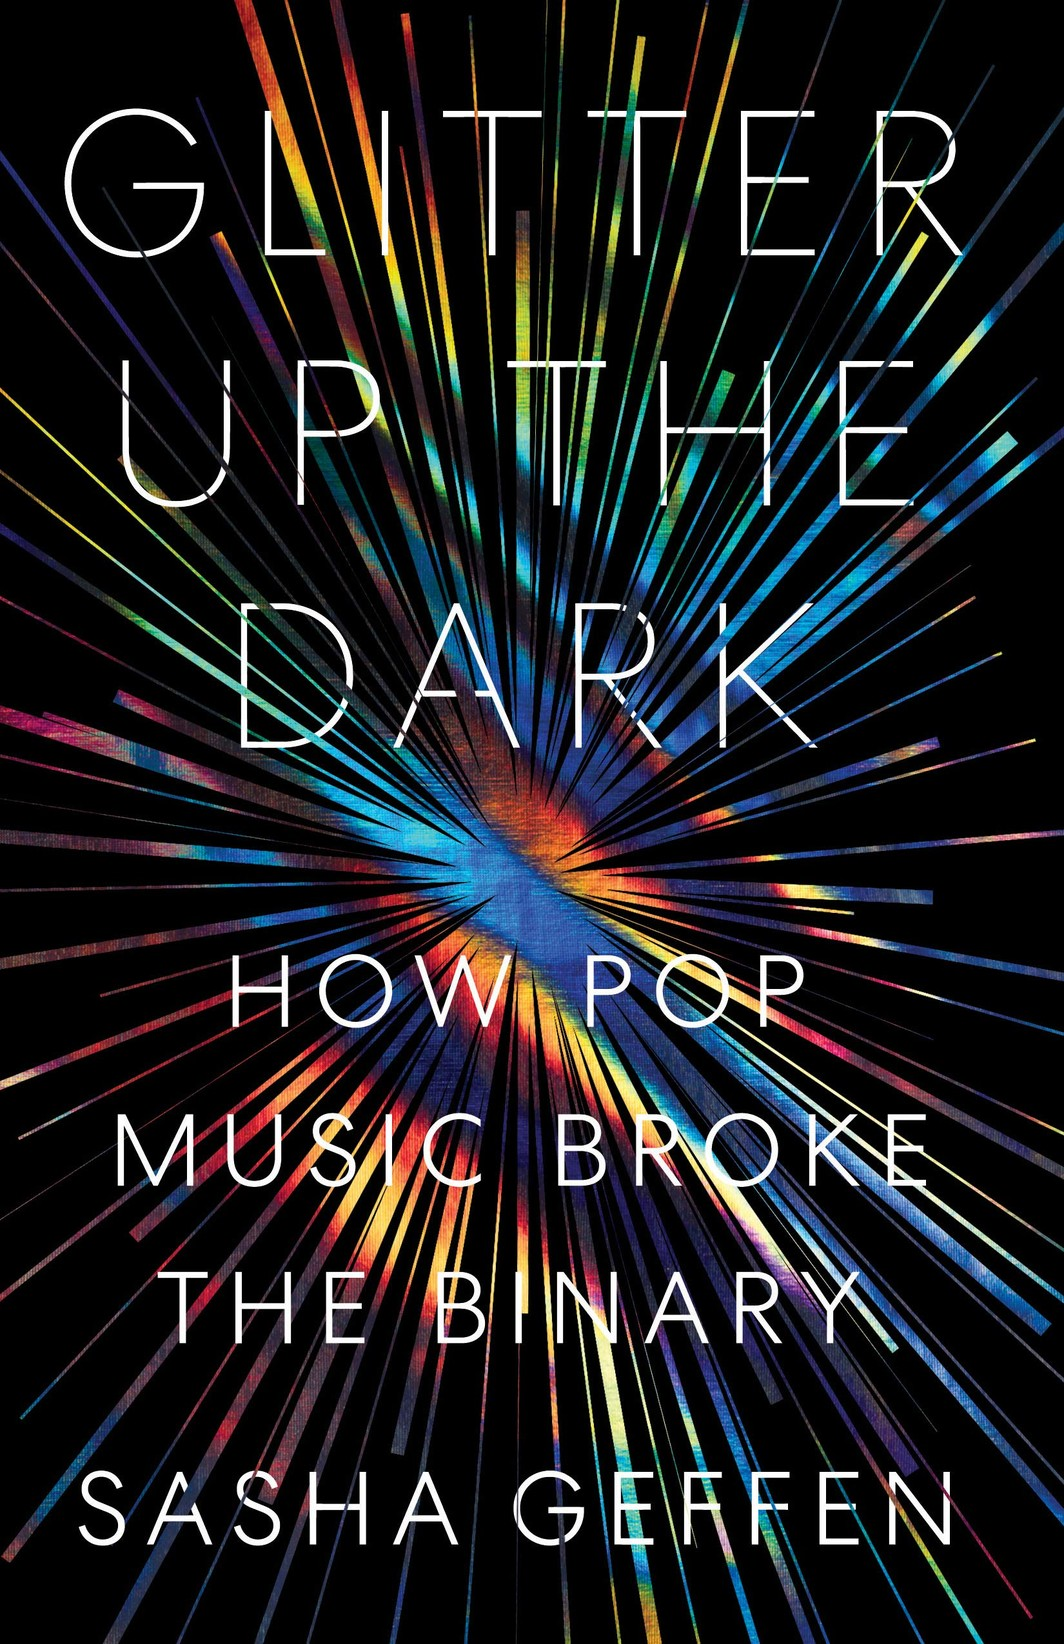 The cover of Glitter Up the Dark: How Pop Music Broke the Binary